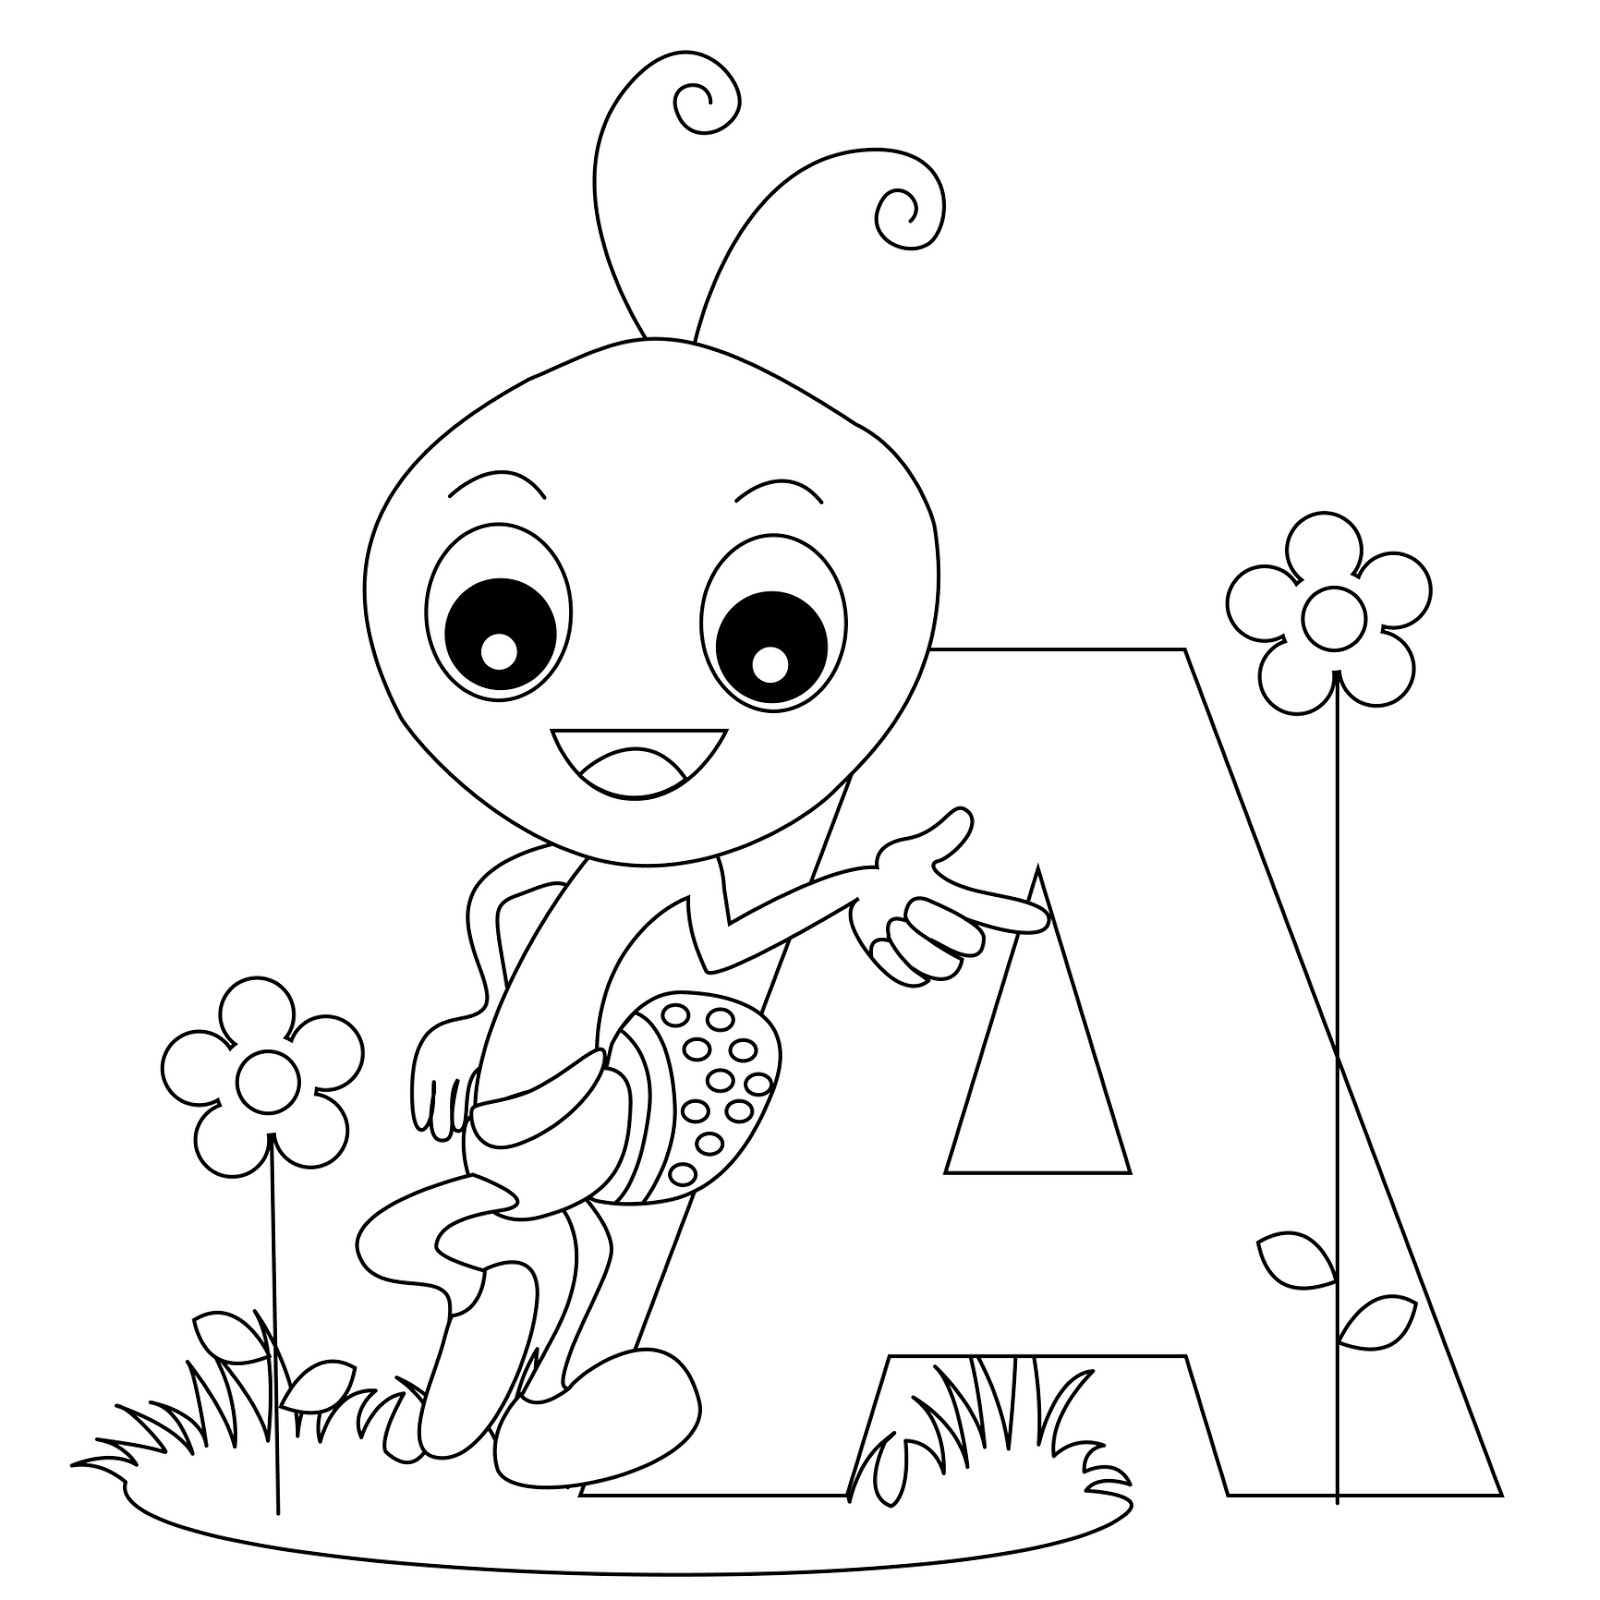 Abc Coloring Pages For Toddlers at GetDrawings.com | Free ...